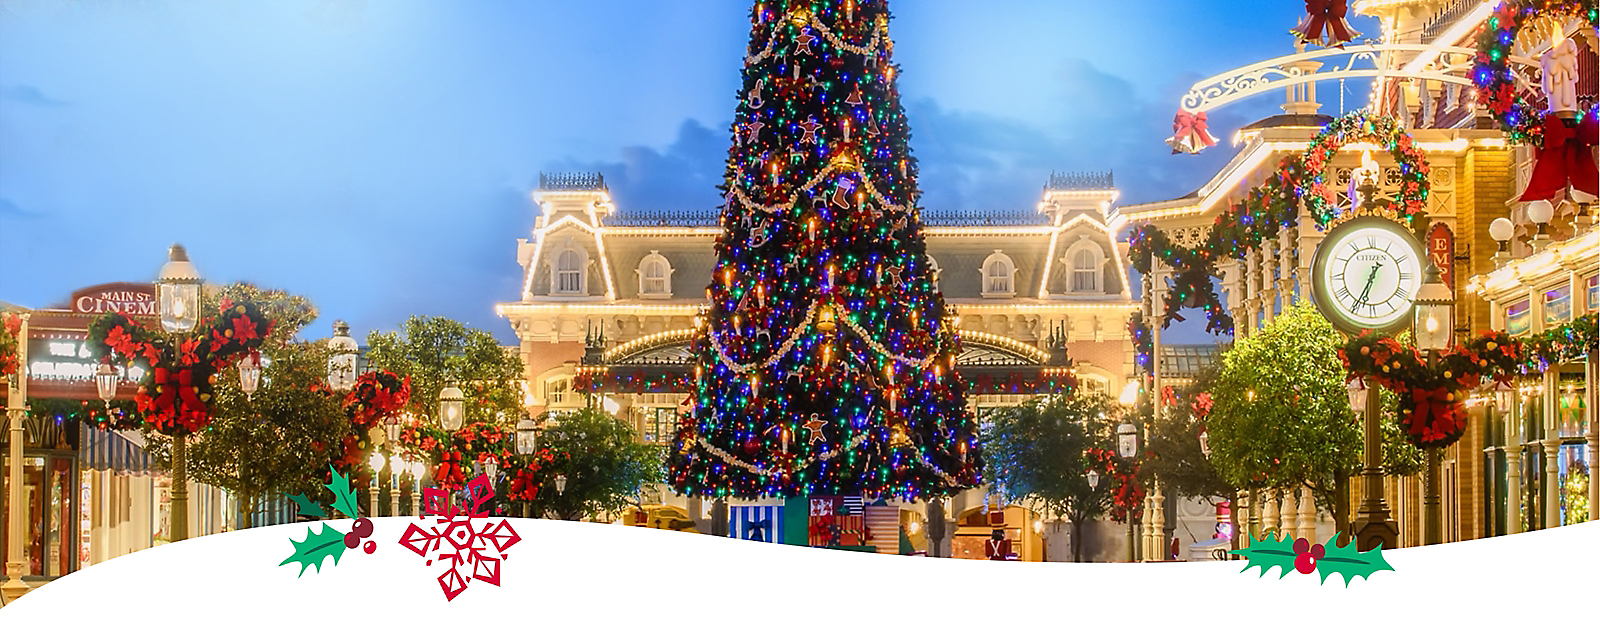 Holiday magic awaits! Get ready to celebrate the most festive time of year.